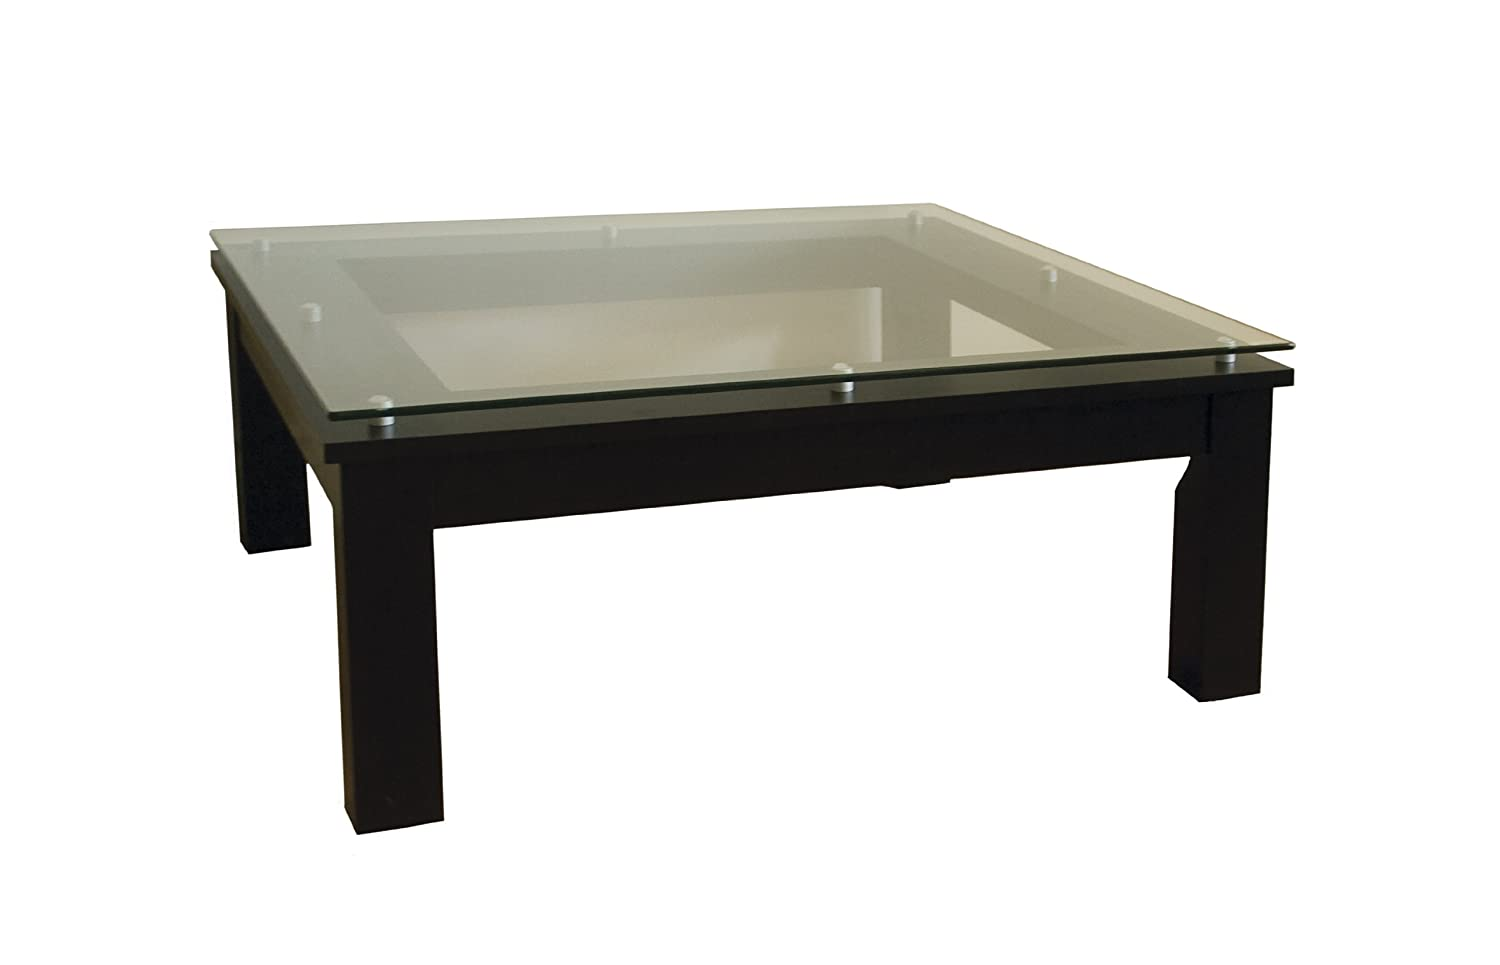 404 squidoo page not found Black coffee table with glass